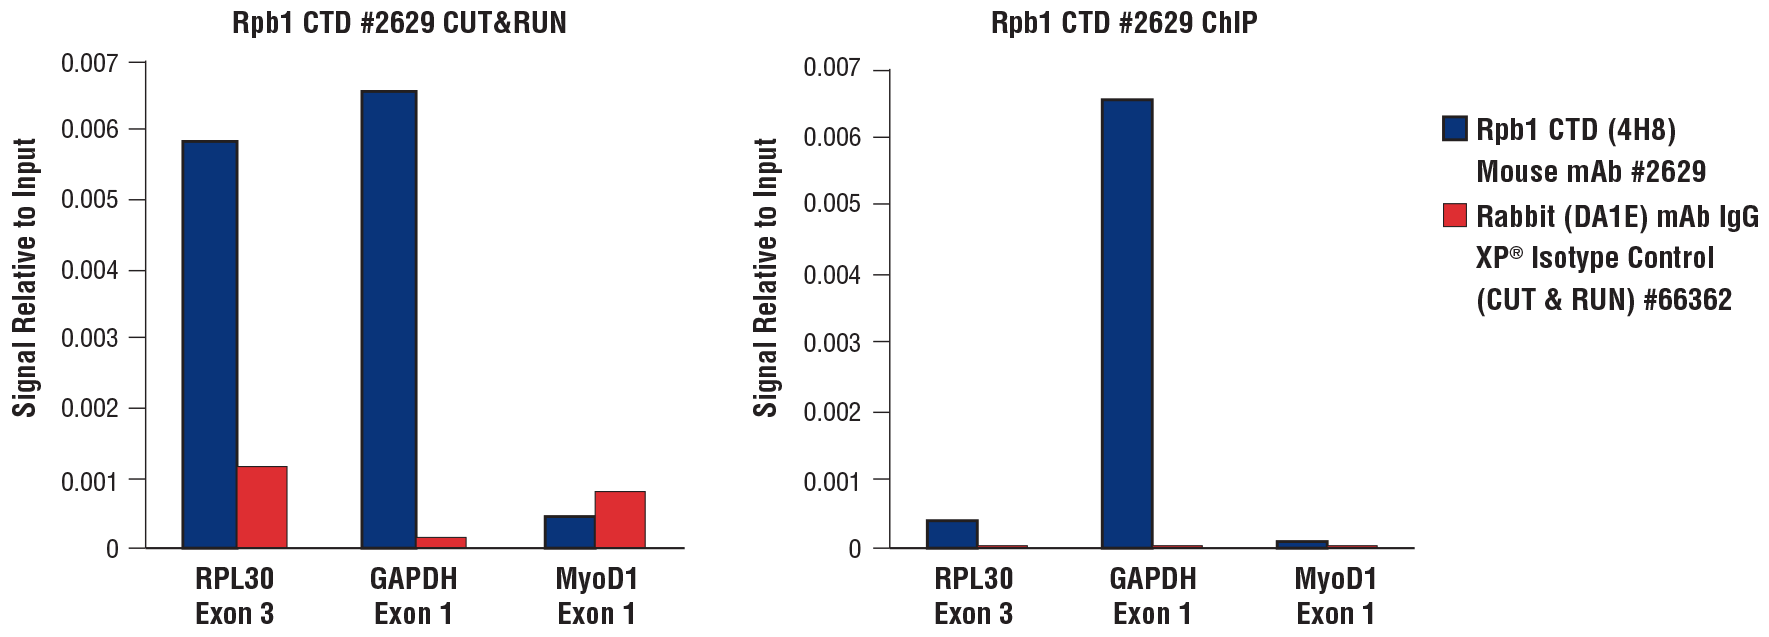 Rpb1 CTD qPCR results for CUT&RUN and ChIP